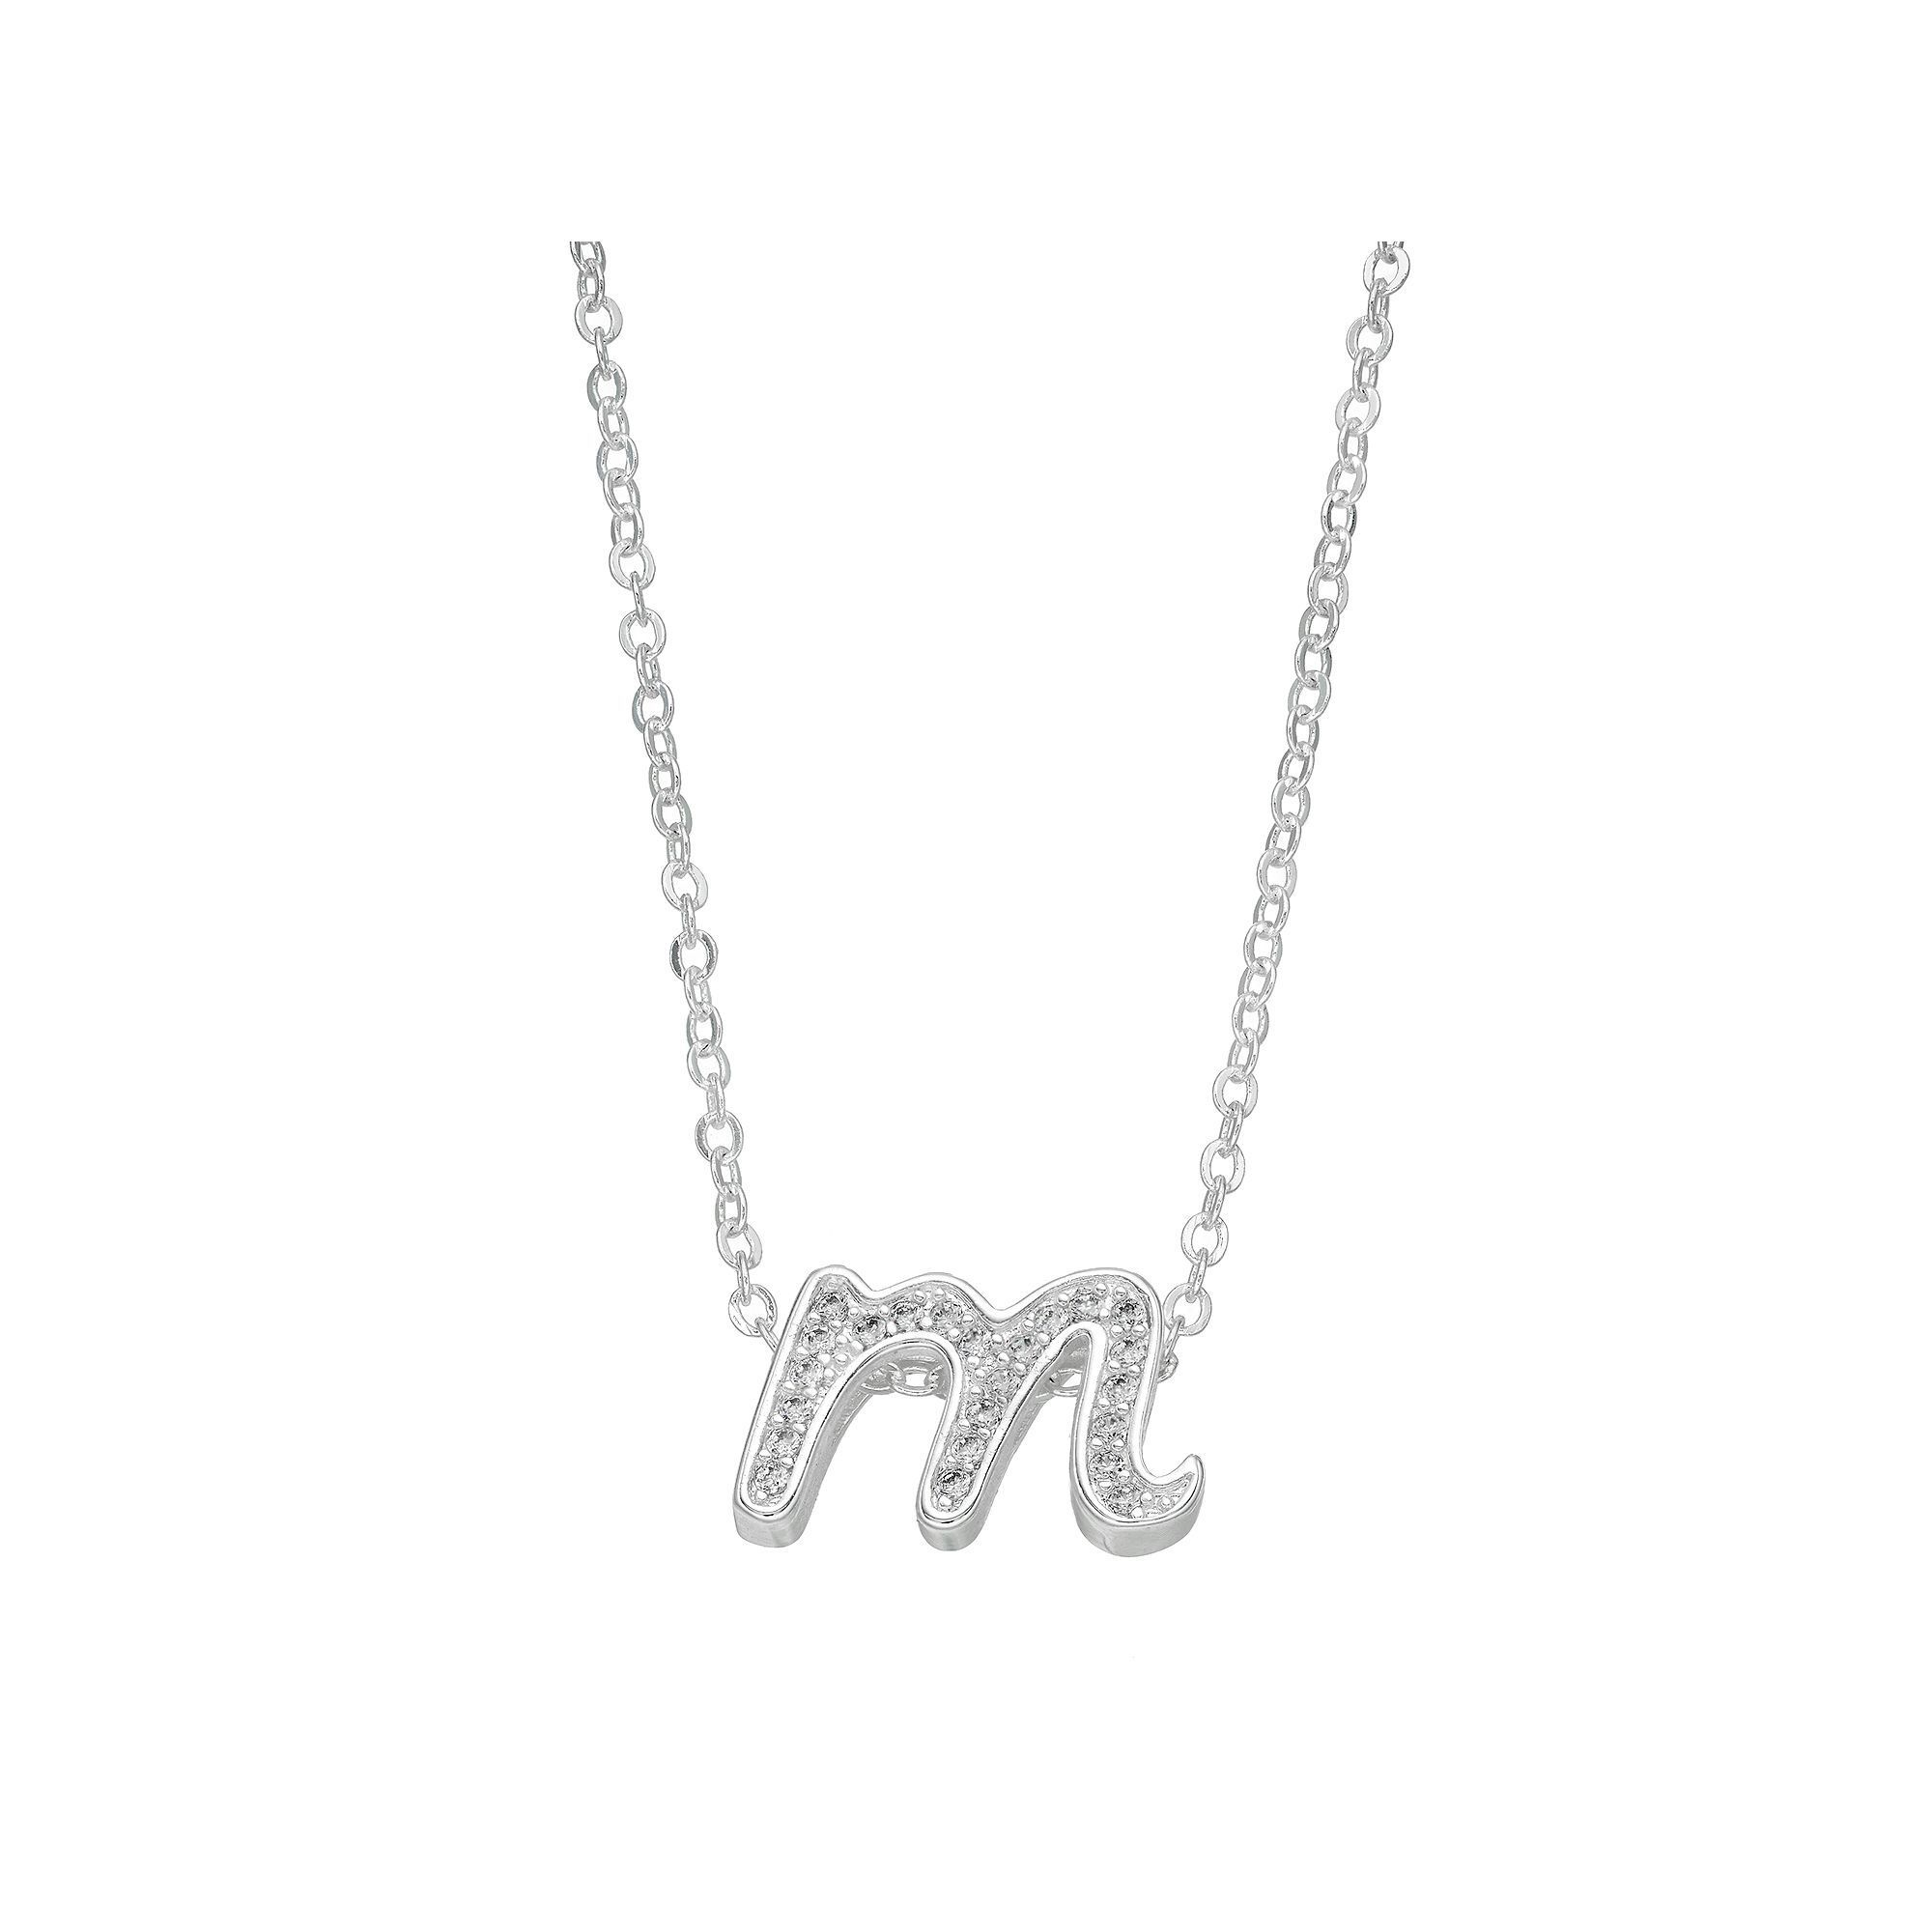 Silver plated cubic zirconia initial pendant necklace womens silver plated cubic zirconia initial pendant necklace womens size 18 aloadofball Image collections